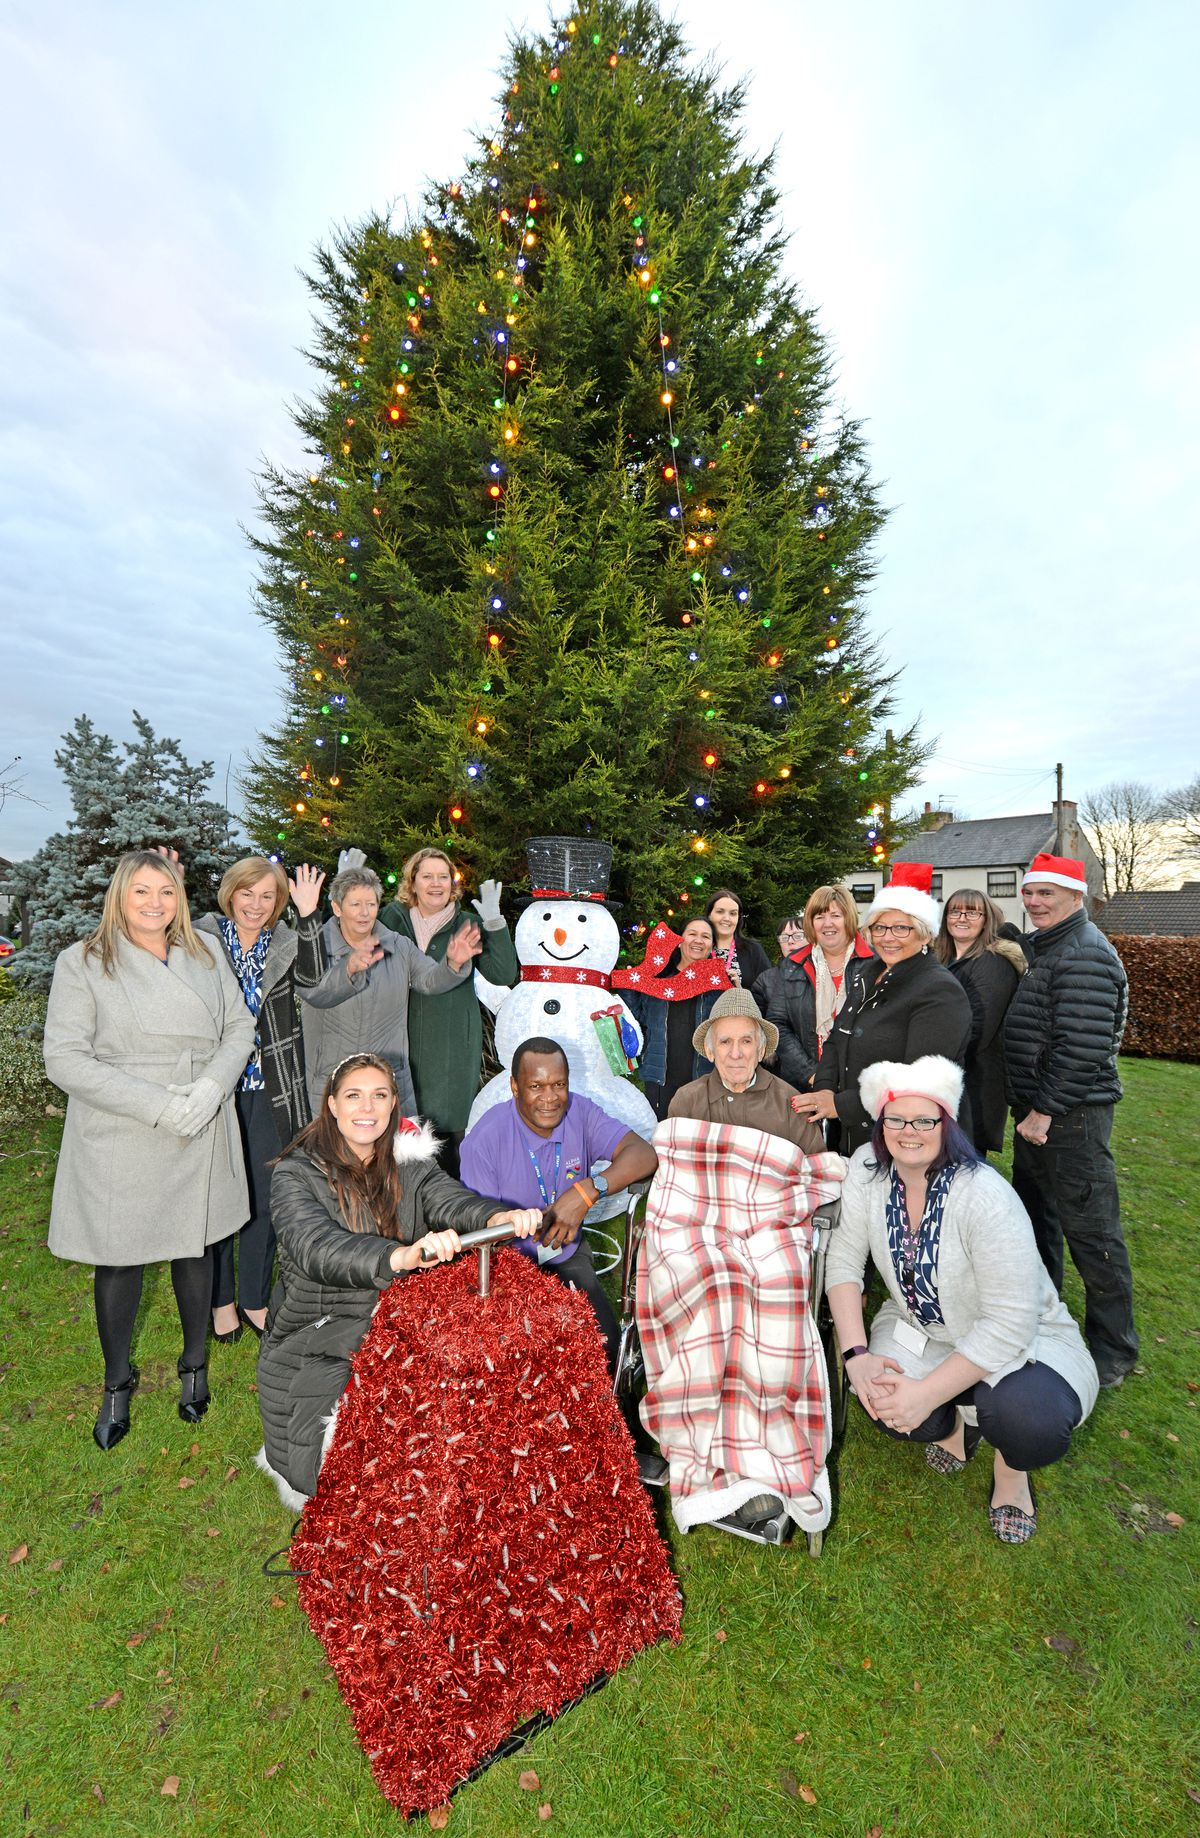 Pippa Langhorne is joined by residents and staff at Lakeview Care Home, Stafford Road, Great Wyrley, as she switches on the Christmas lights